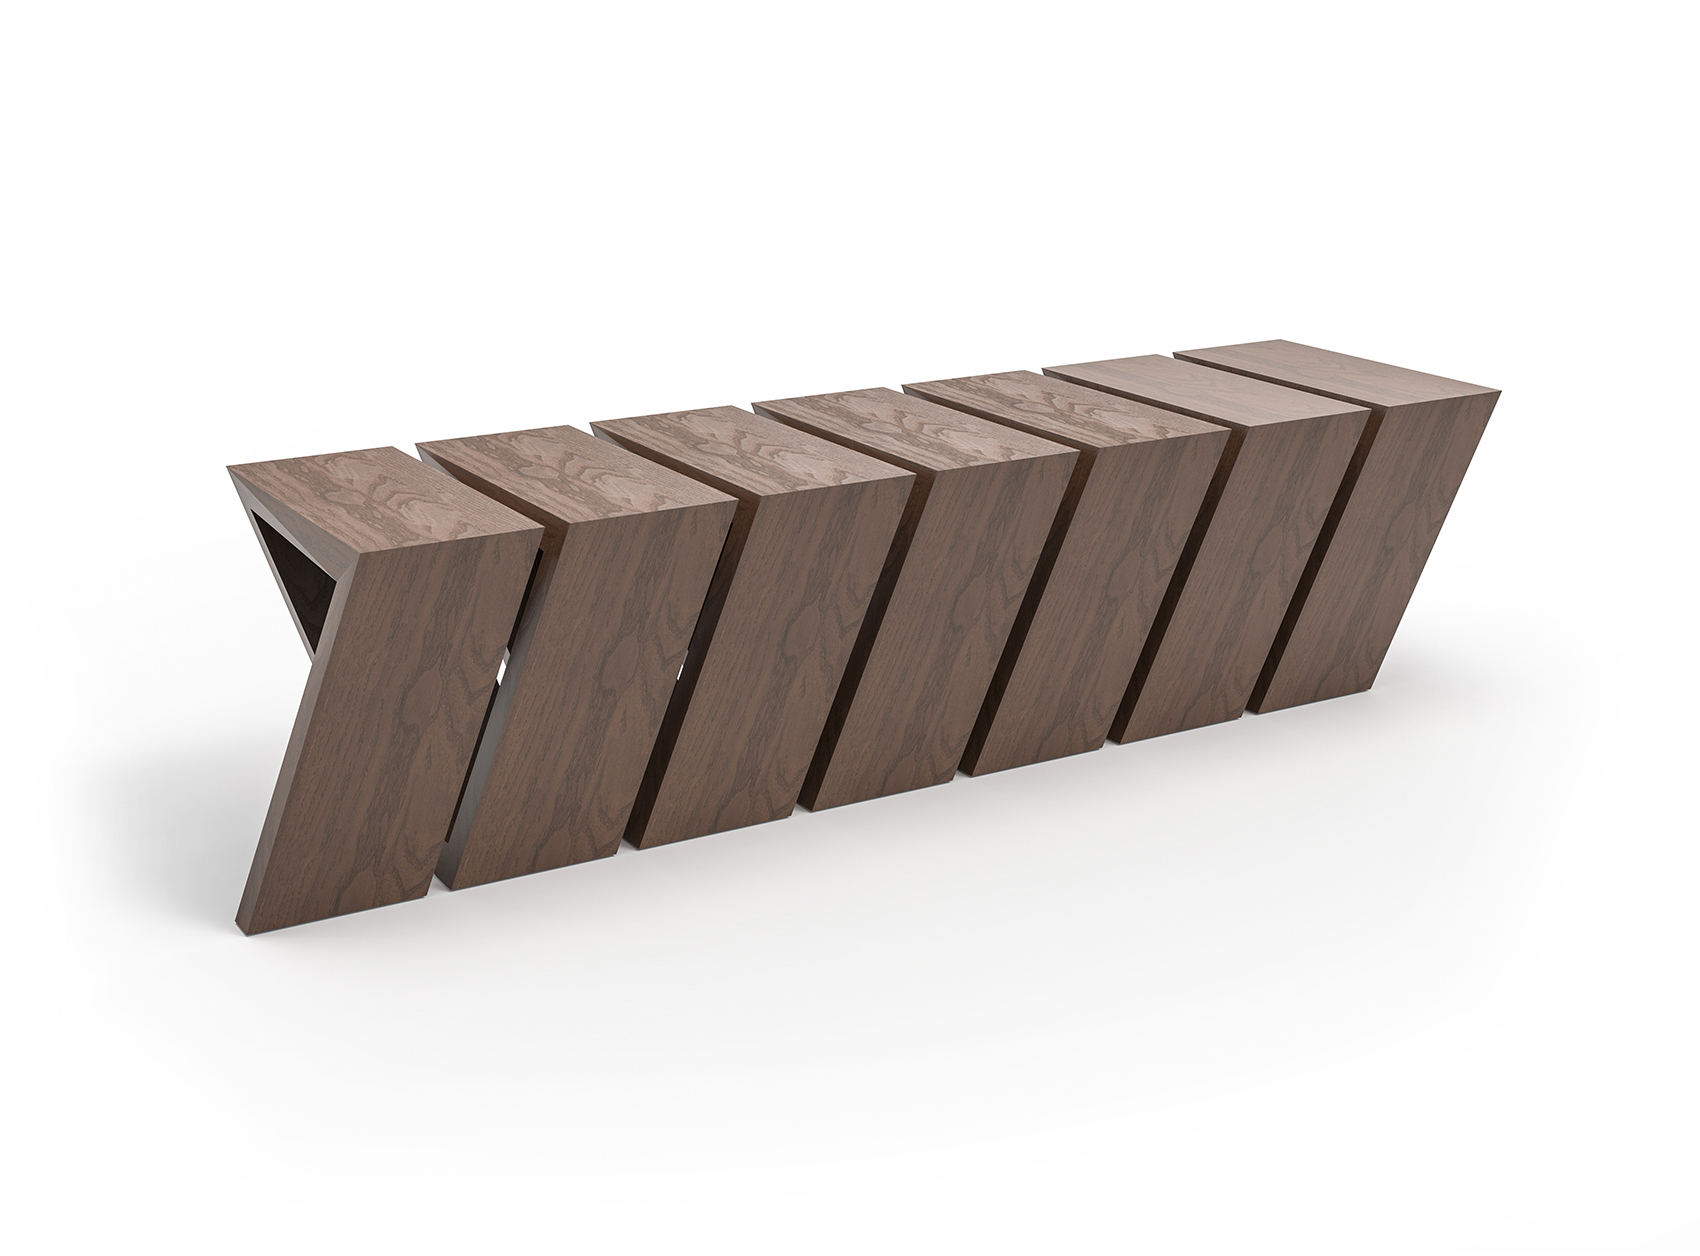 Looper bench michael graves arvid wood design bench modern minimalist